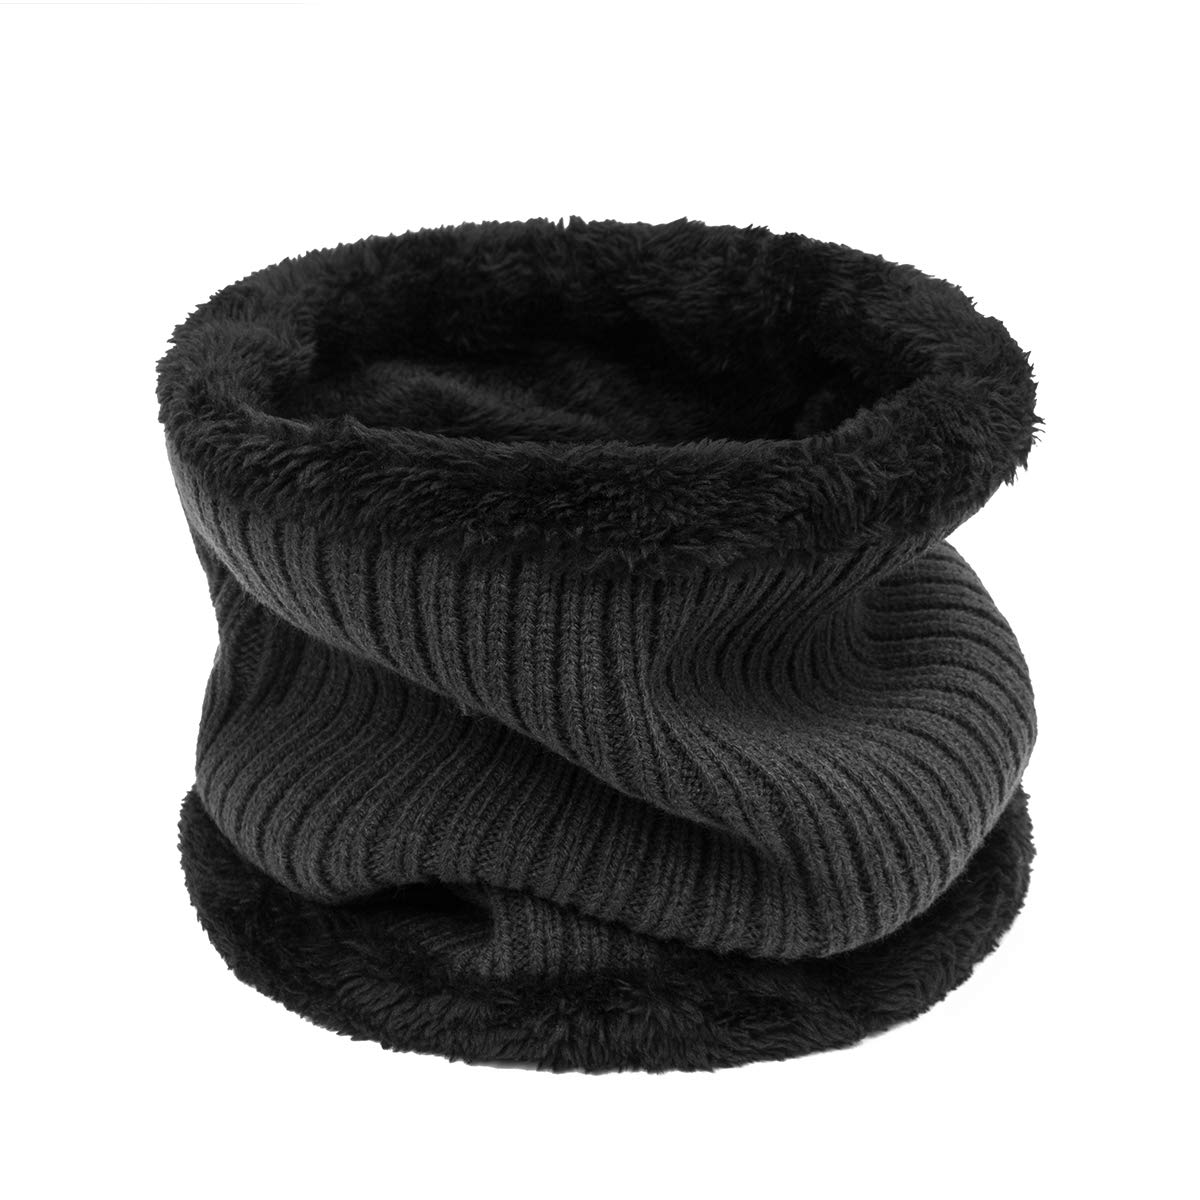 ADUO Winter Infinity Scarf Double-Layer Soft Fleece Lined Thick Knit Neck Warmer Circle Scarf Windproof for Men Women